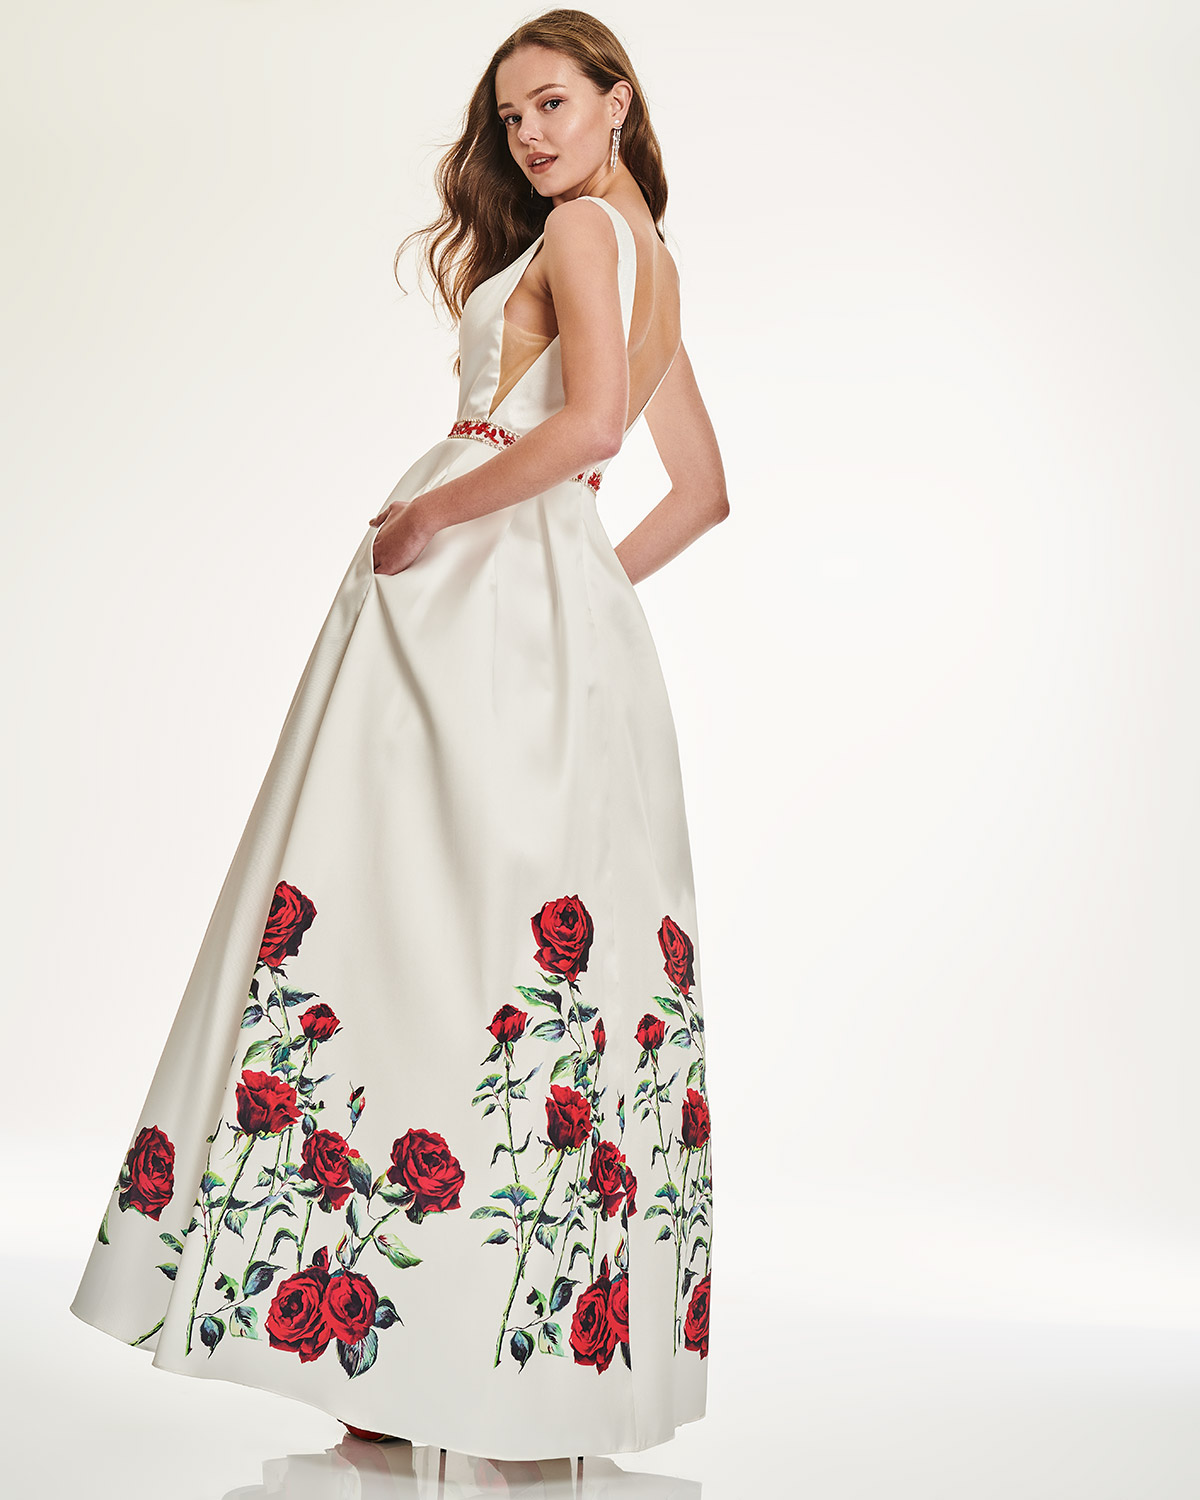 Cocktail Dresses / Long dress with floral motif and beading on the waistbund